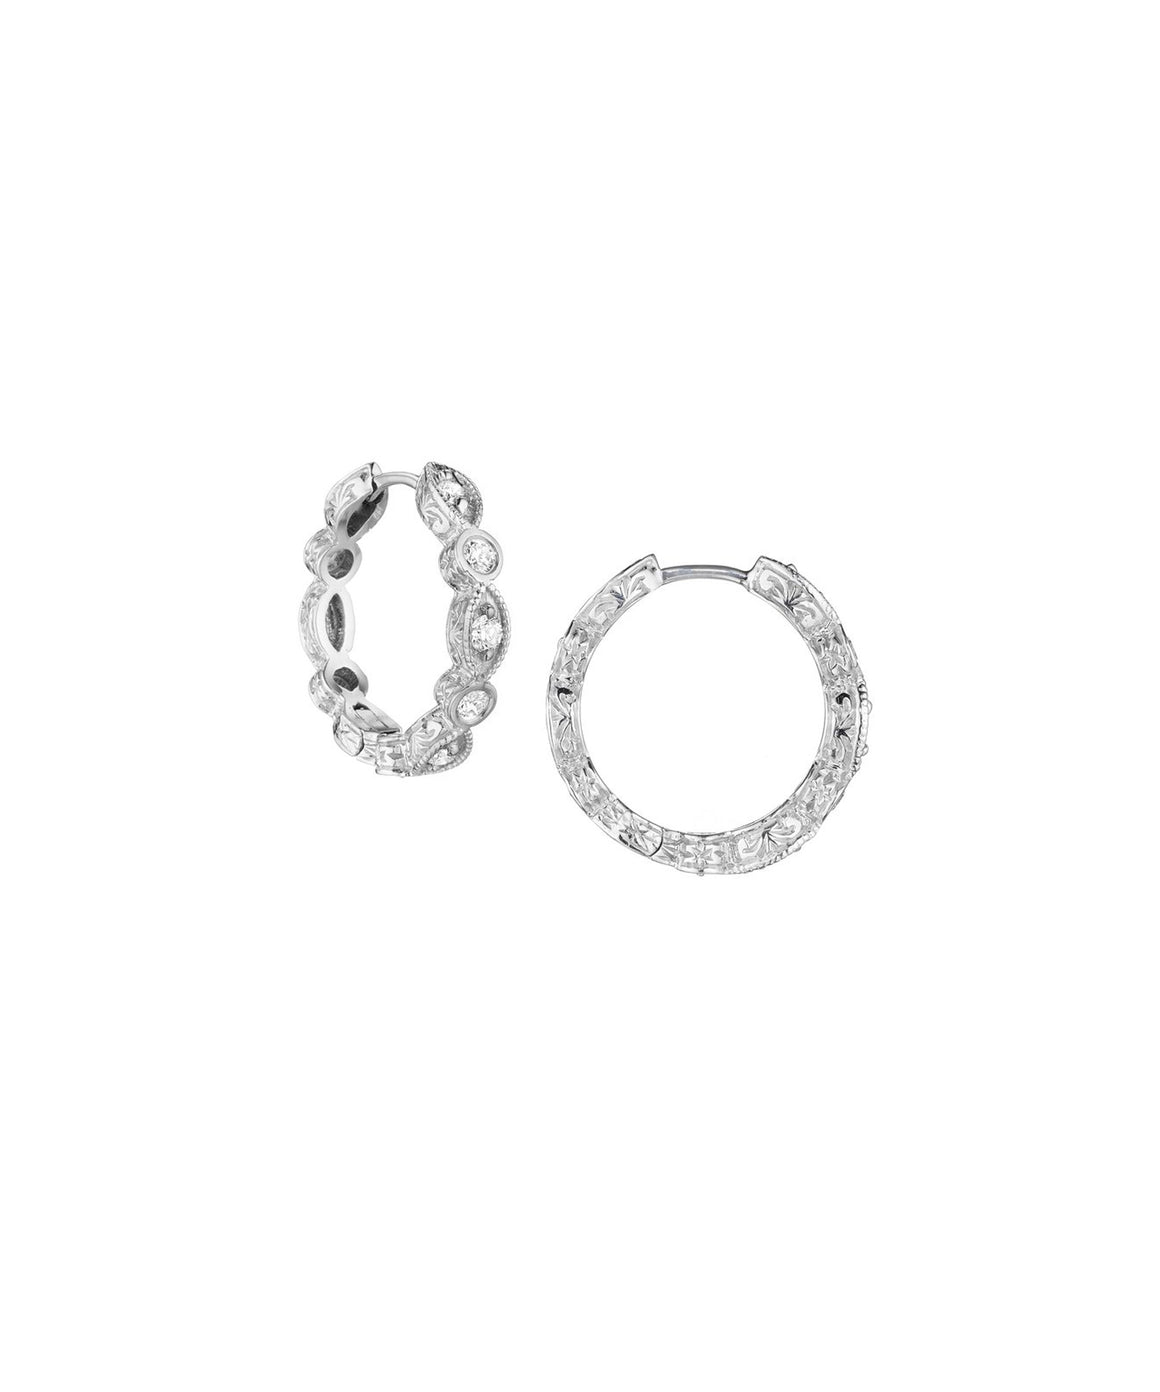 White gold round/marquise hoop earrings